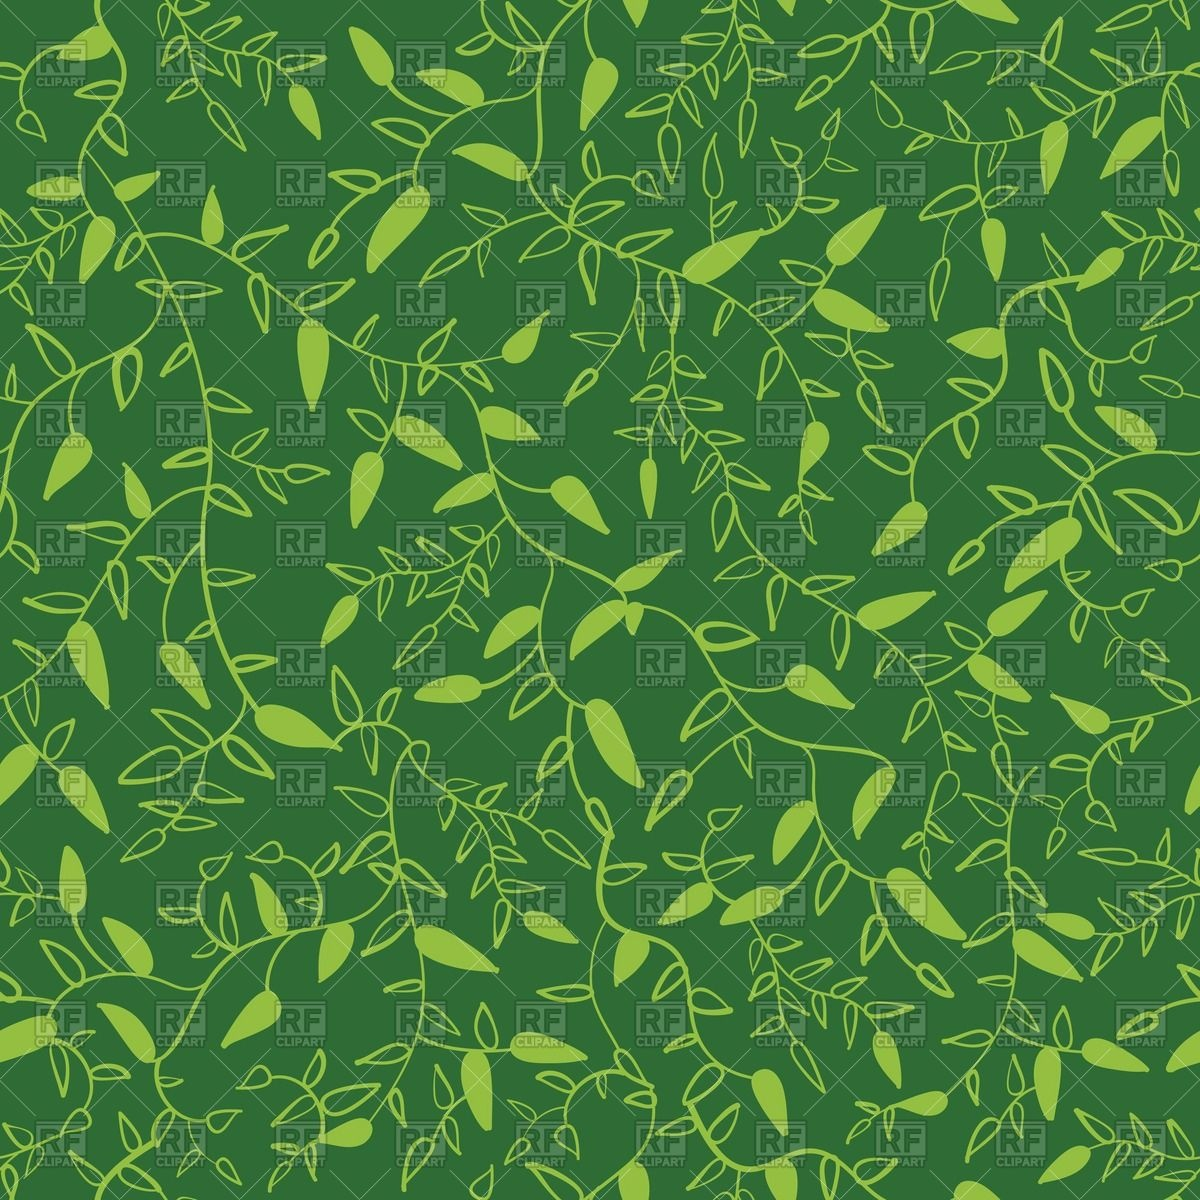 Herbal seamless pattern with leaves Vector Image #40324.